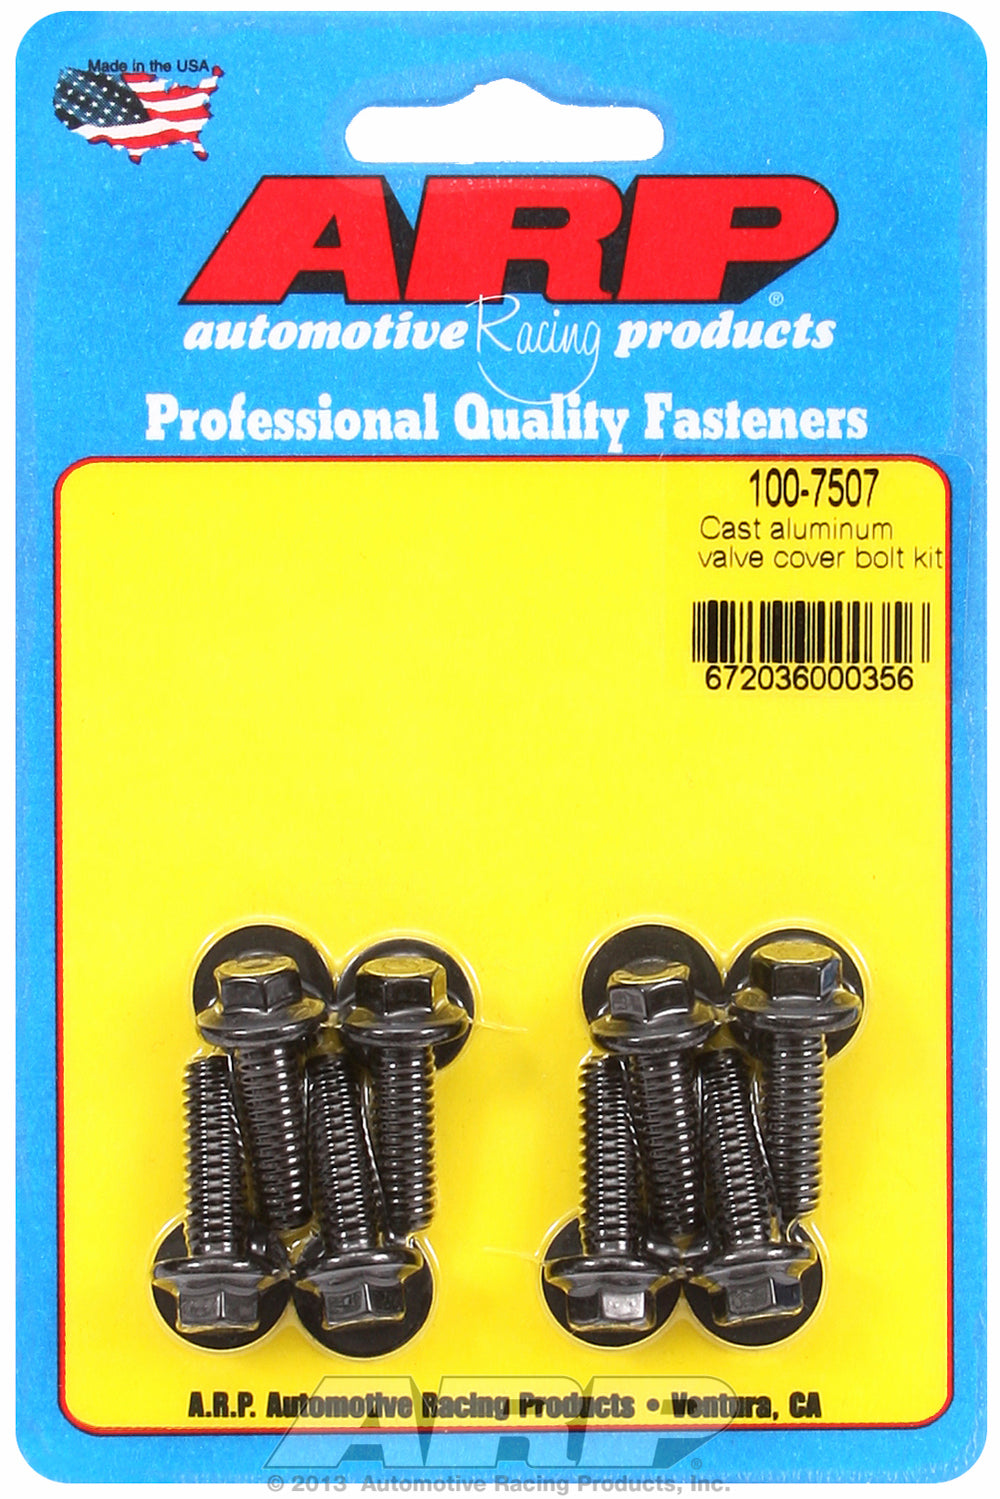 Valve Cover Bolt Kit for Cast Aluminum Covers 1/4-20 Thread, 0.812in UHL, Hex Head QTY: 8